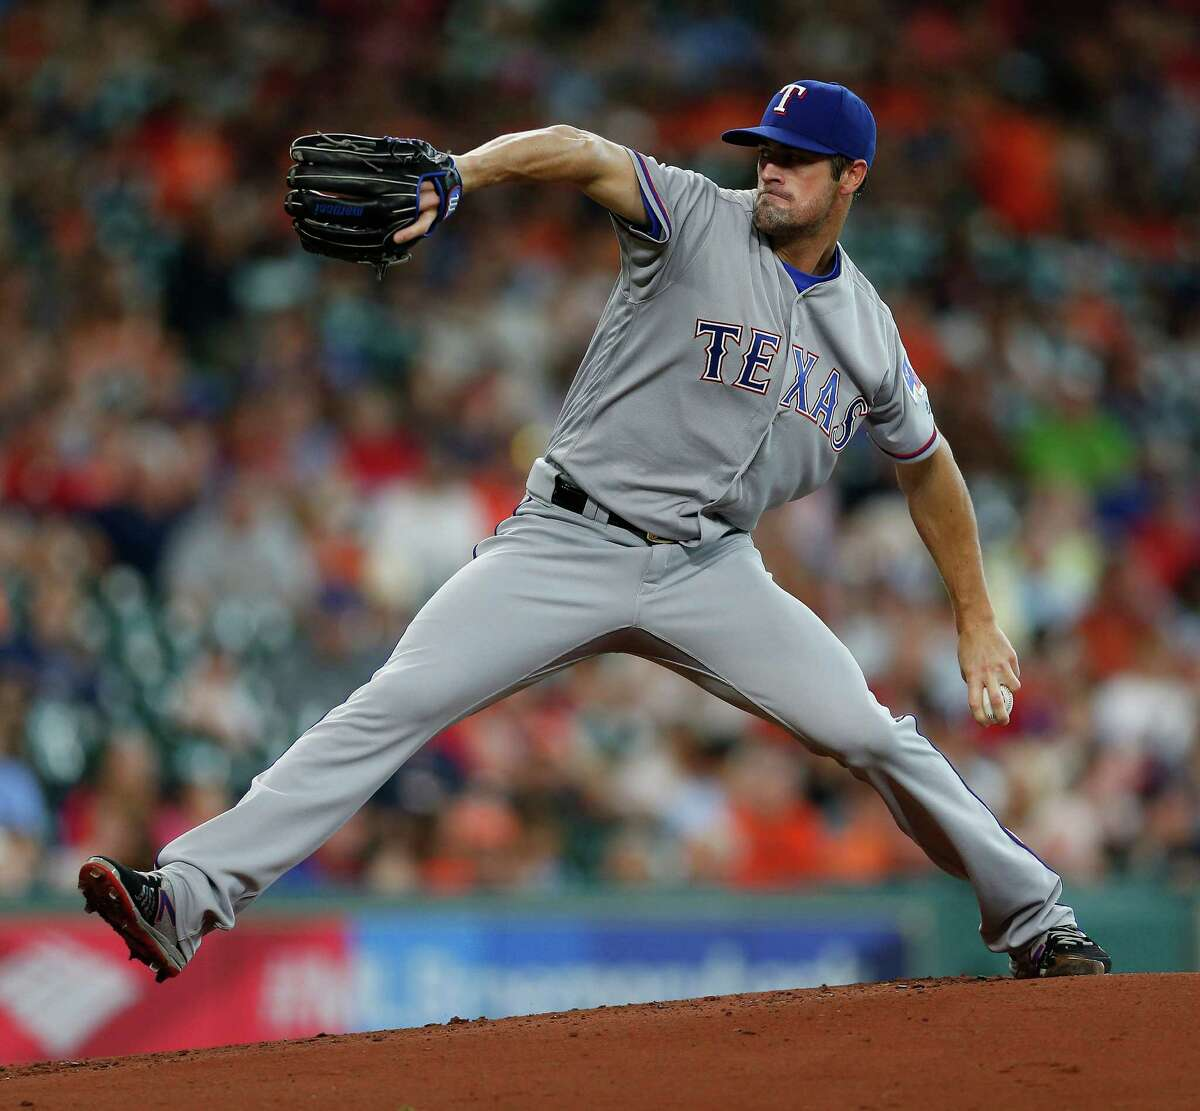 Hamels was snagged by the Phillies out of San Diego's Rancho Bernardo High School in 2002 and six years later was the ace of Philadelphia's 2008 World Series winner, going 4-0 in five postseason starts and taking Series and NLCS MVP honors. Durability has been a trademark, with the lefthander failing to reach 200 innings just once in the last eight years. After posting a 114-90 record in 10 seasons with the Phillies, Hamels has gone 12-2 since a midseason trade sent him to the Rangers last year.